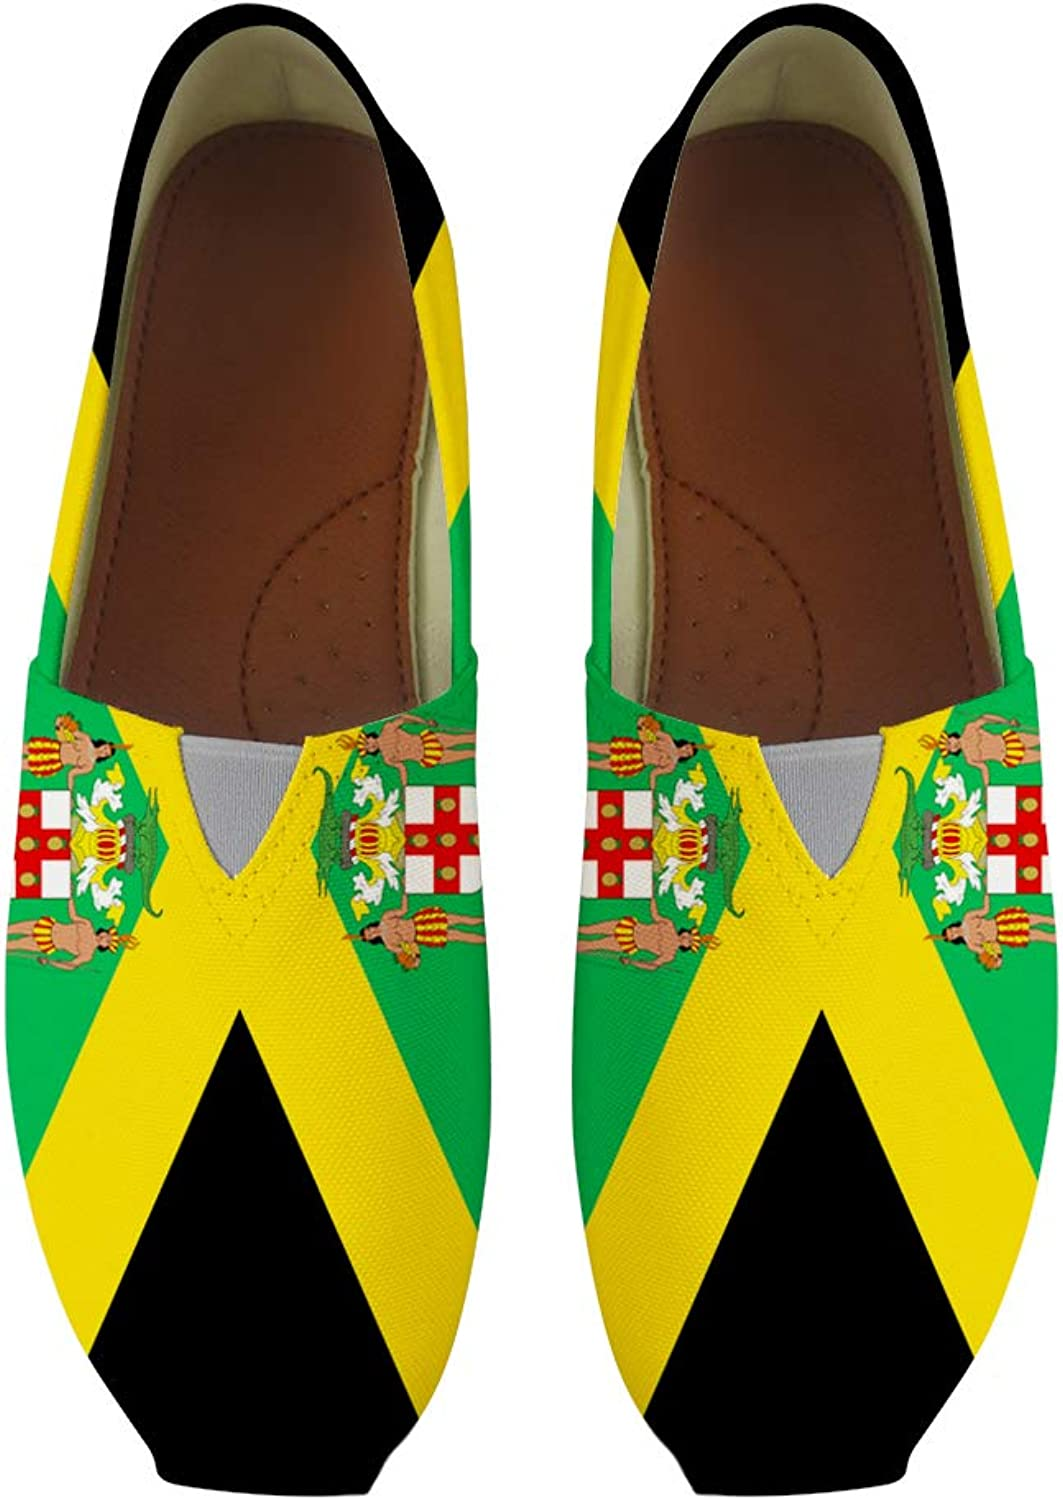 Owaheson Classic Canvas Slip-On Lightweight Driving shoes Soft Penny Loafers Men Women Jamaica Flag National Emblem